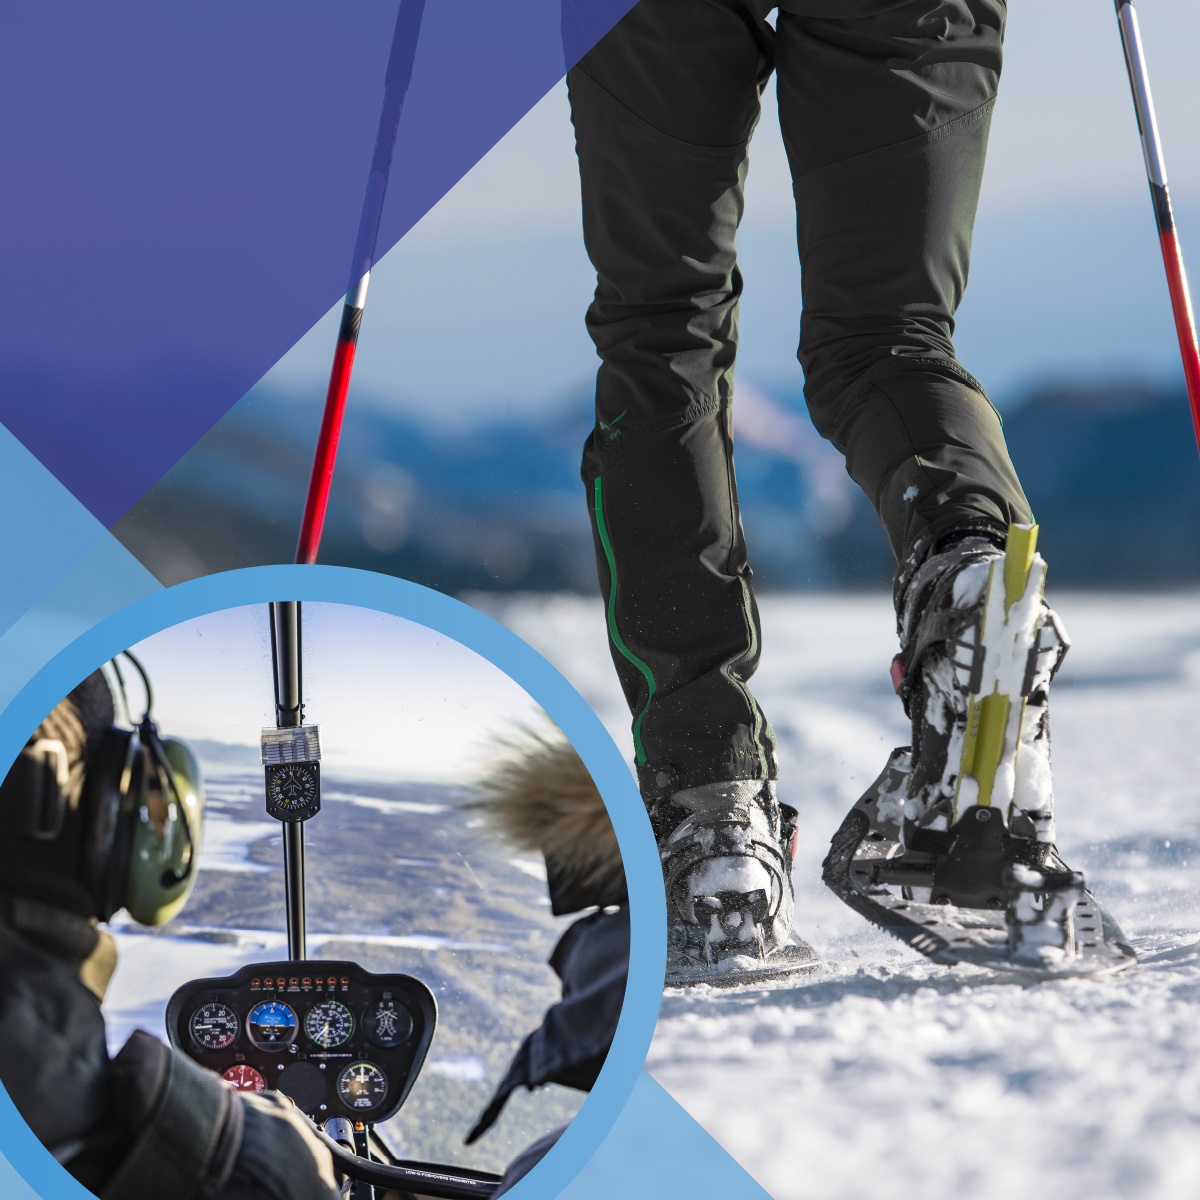 HELICOPTER HELI-SNOWSHOEING ADVENTURE GIFT CARD